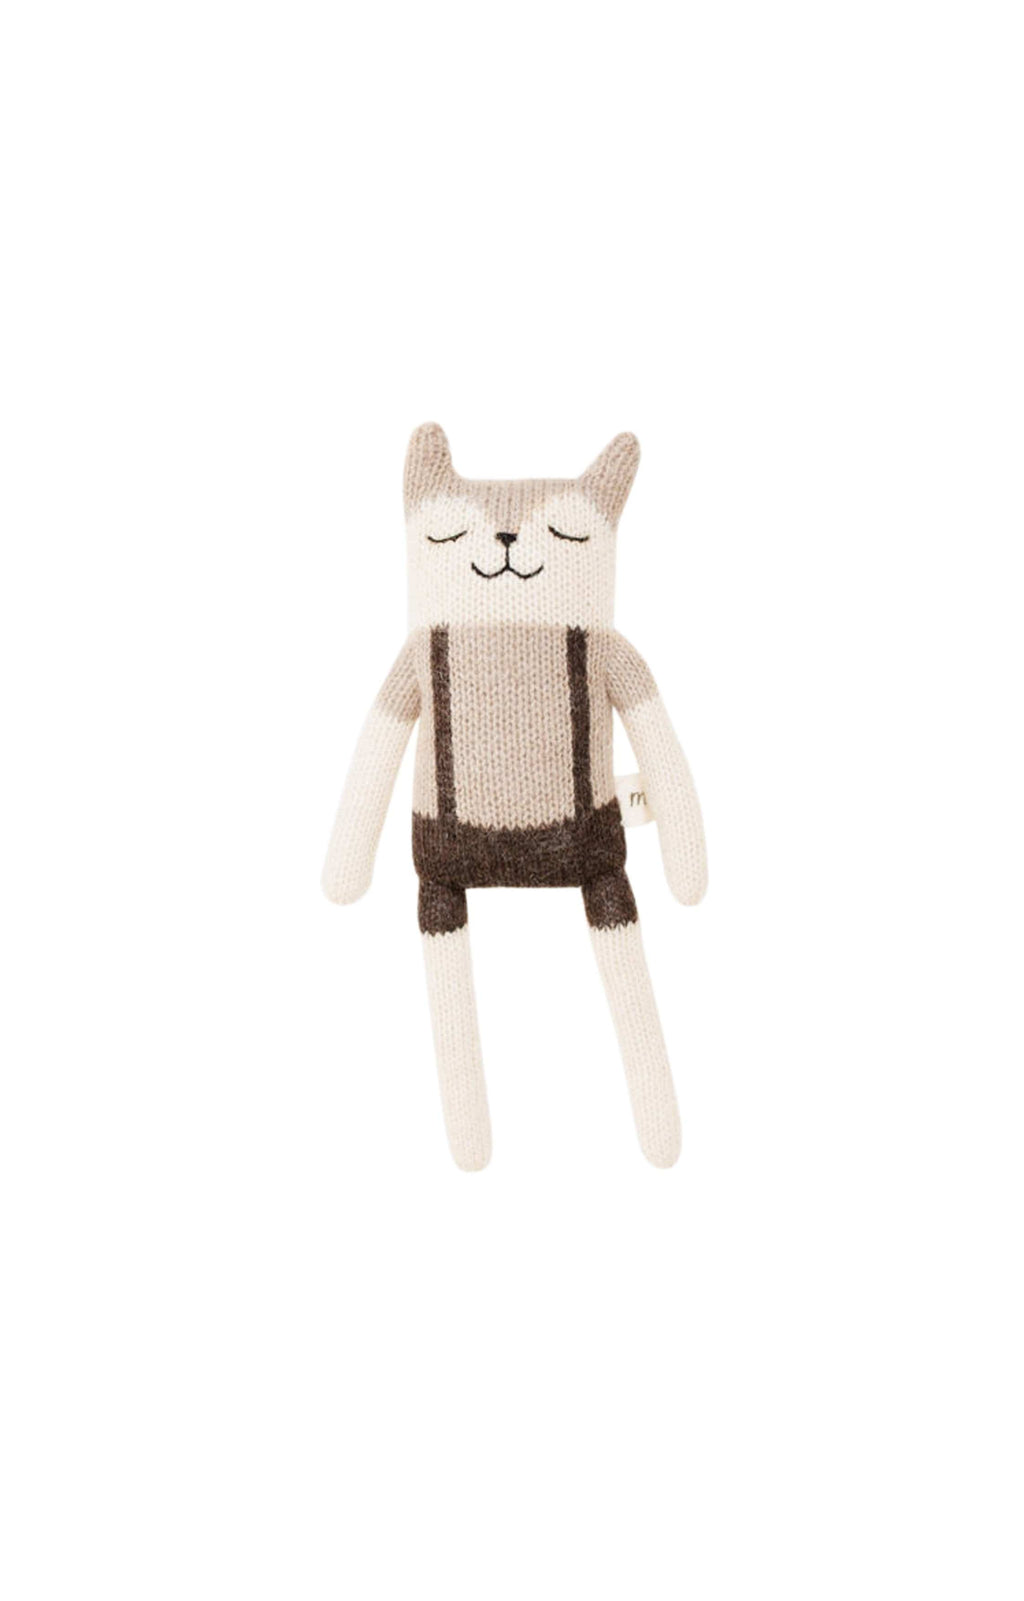 Main Sauvage fawn knit toy with overalls (PRE-ORDER AUG)